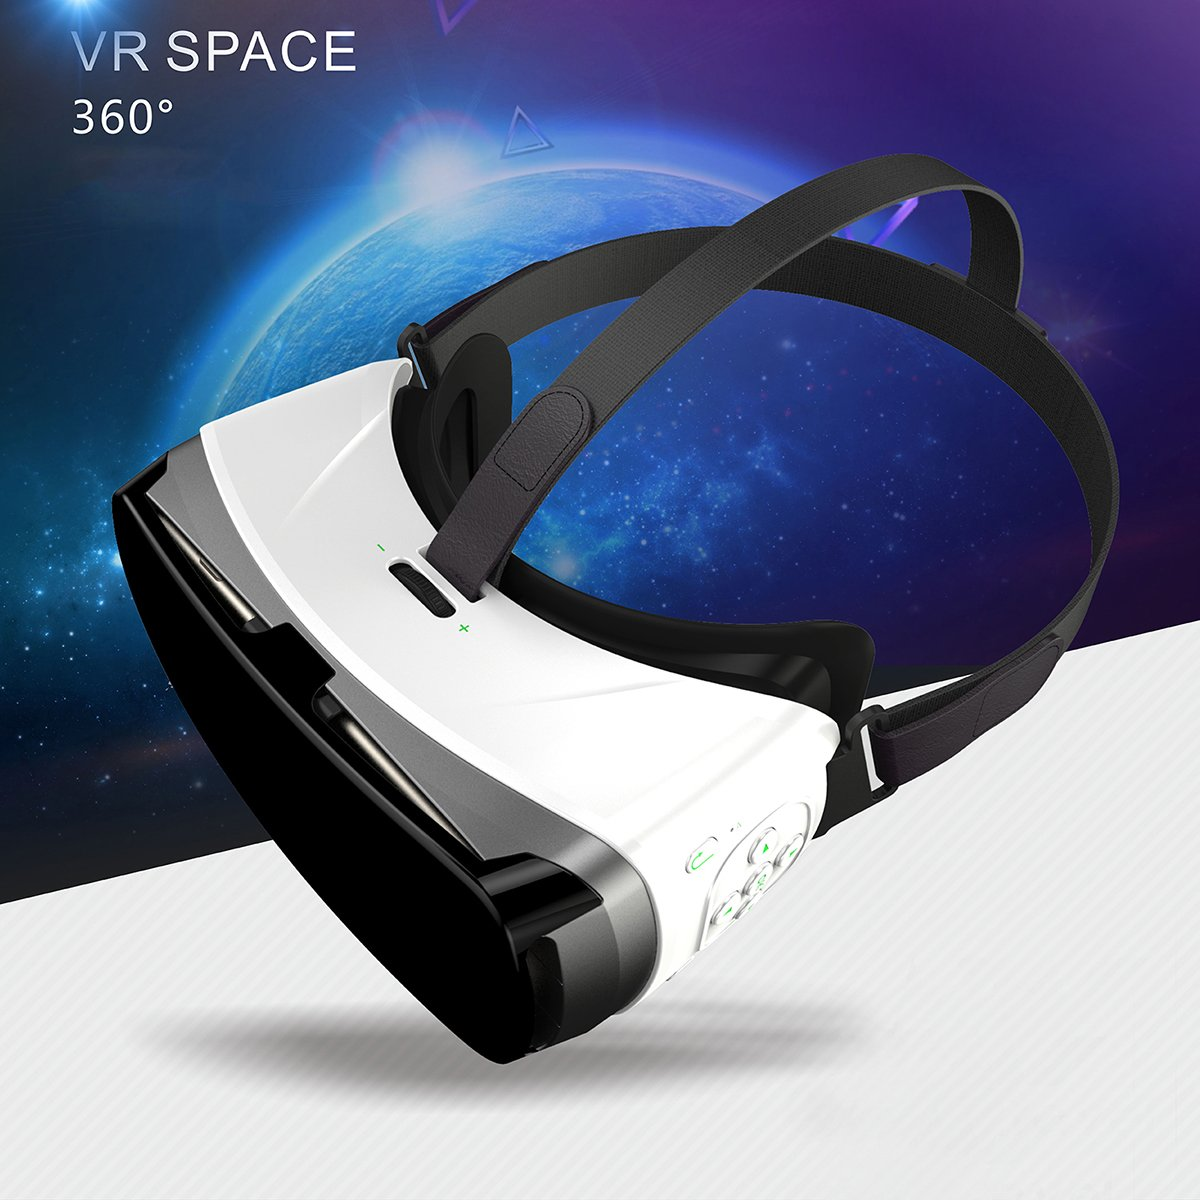 3D Virtual Reality Headset 3D Virtual Reality Glasses for 360° Video, Movies, Pictures for IOS Android smartphone